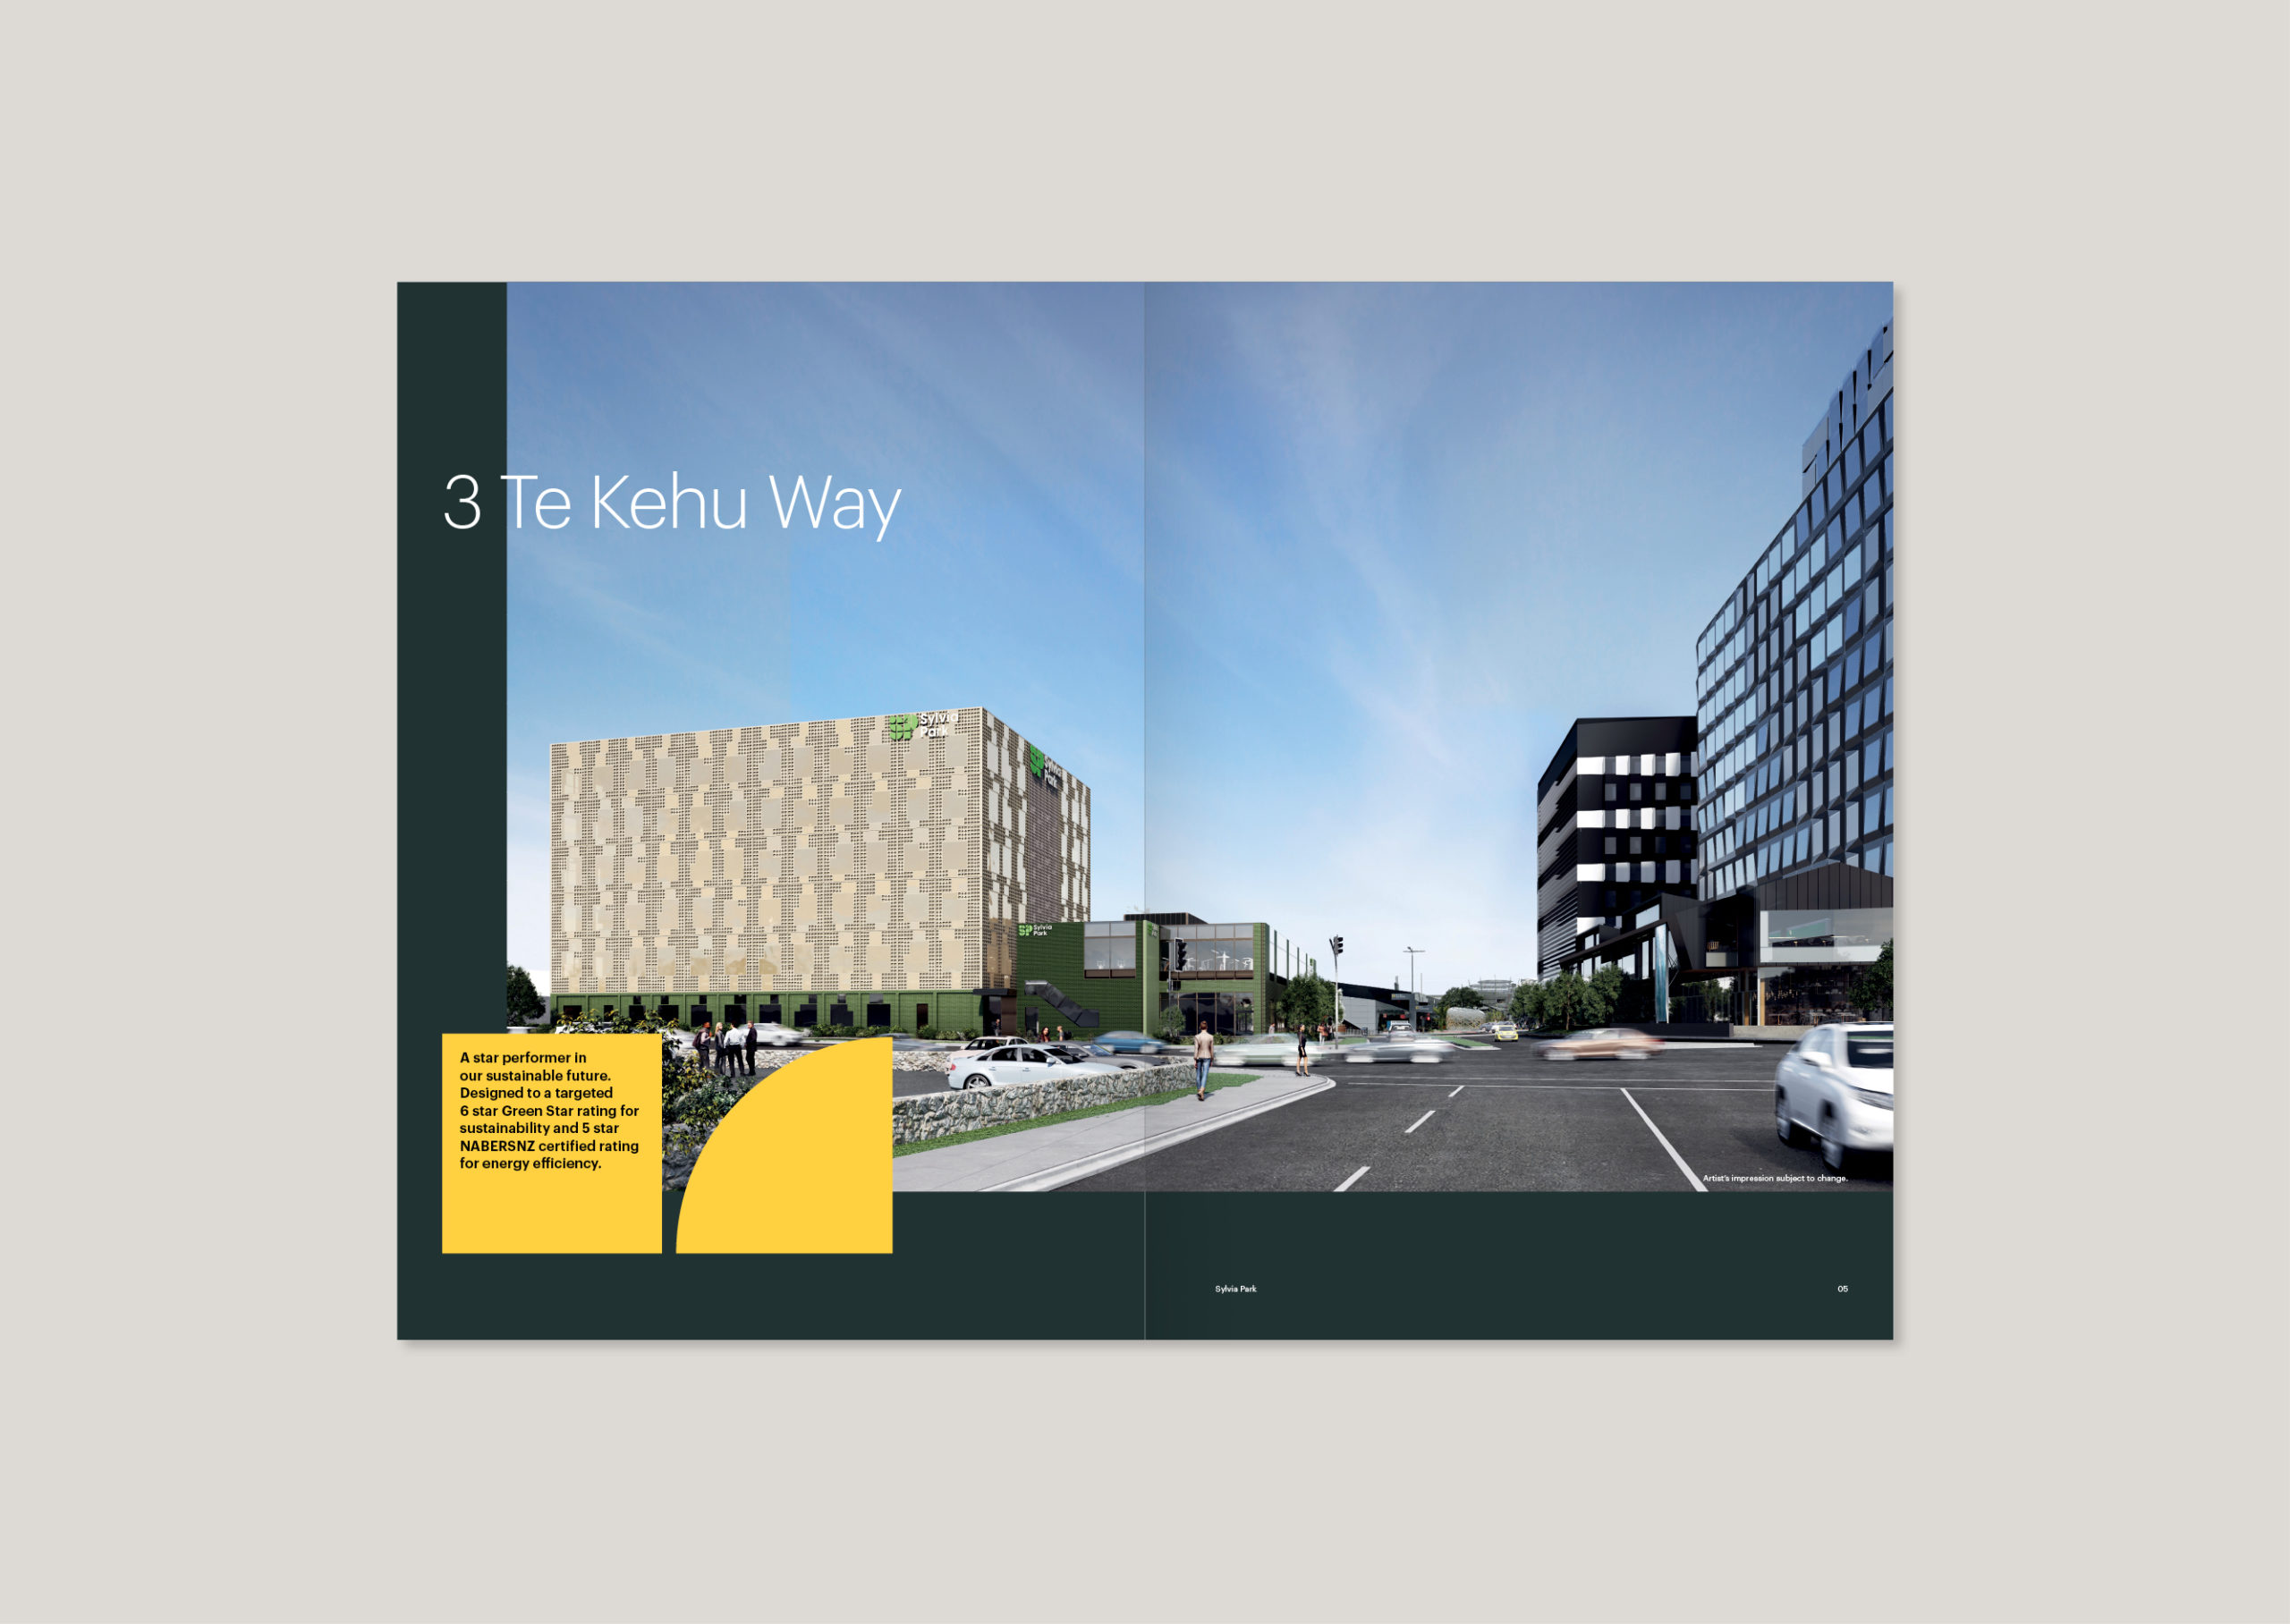 Dramatic double page image showing low street view of 3 Te Kehu Way in situ at Sylvia Park